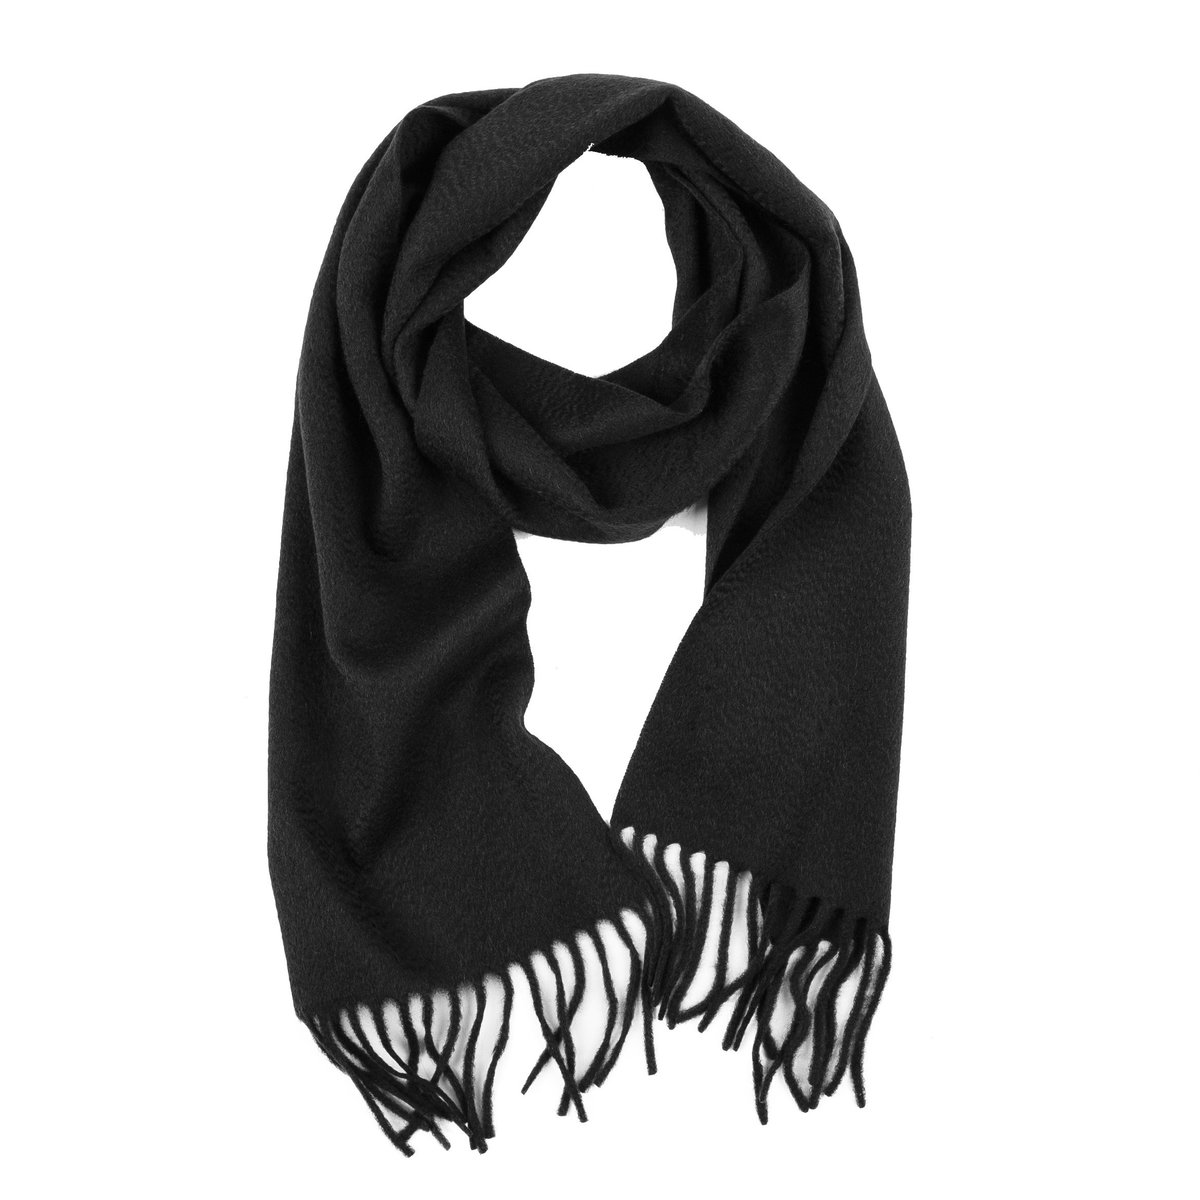 100% COLOMBO PURE CASHMERE SCARF (BLACK)